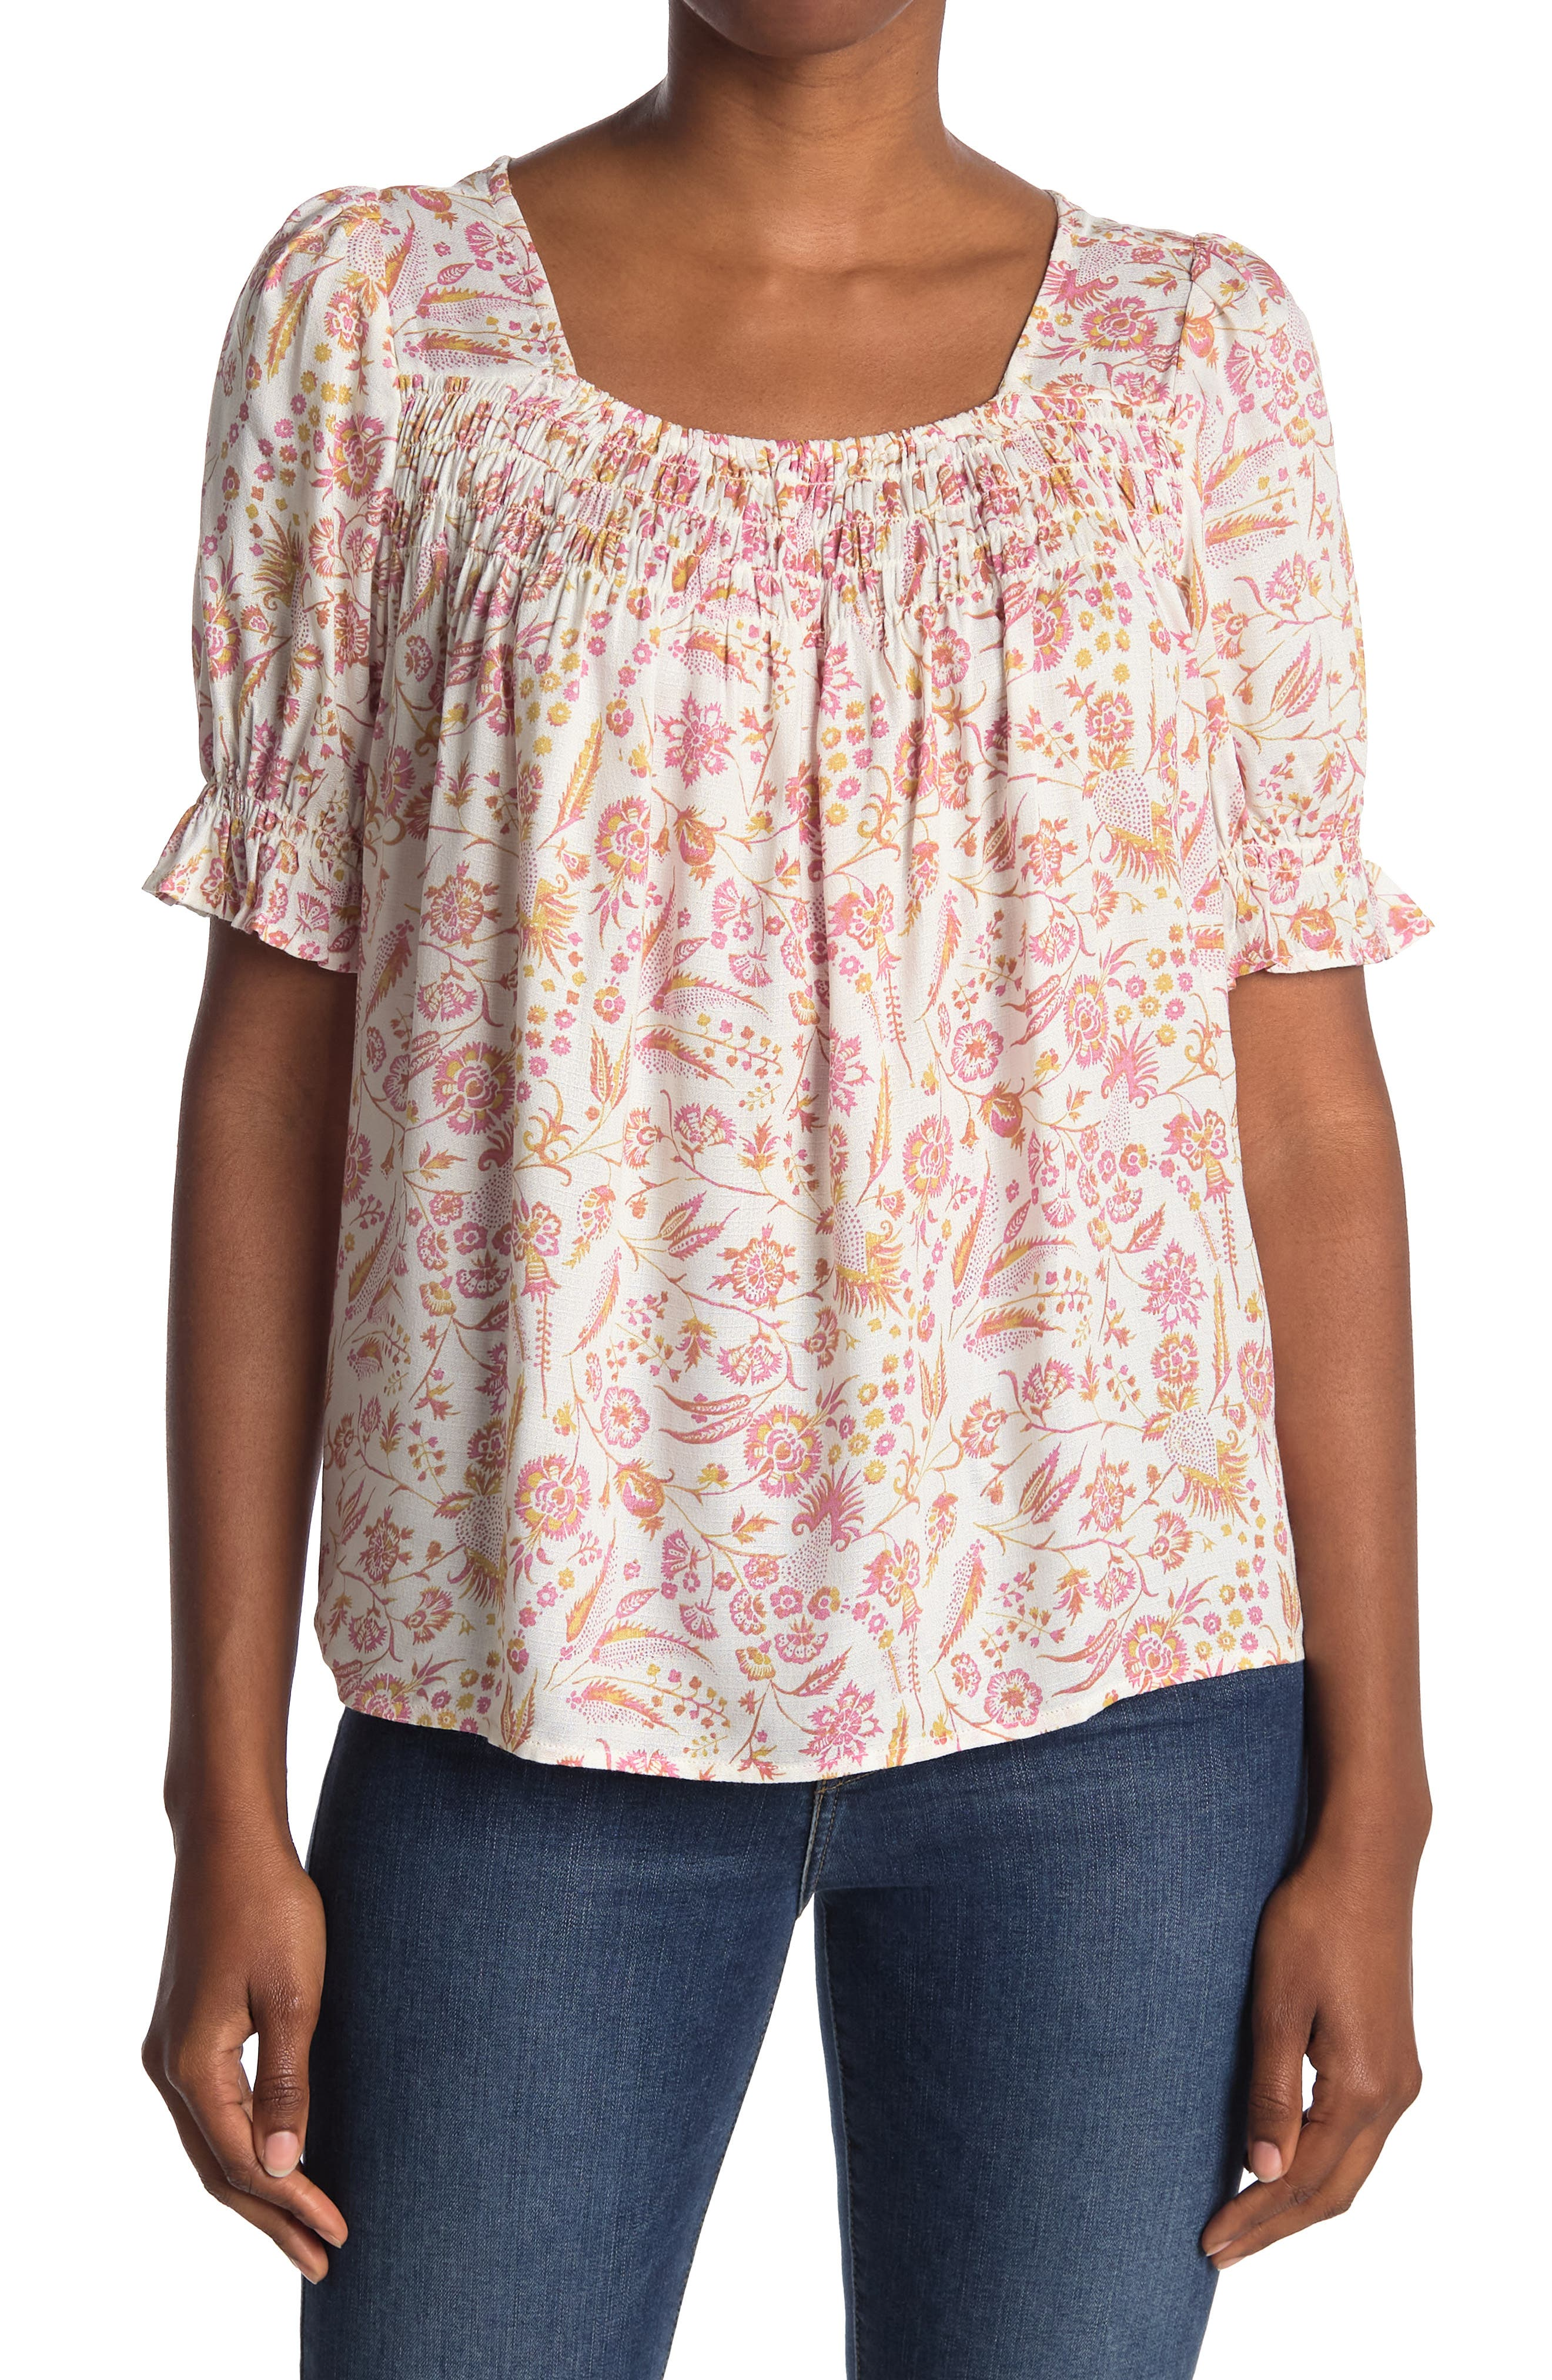 Cottagecore Clothing, Soft Aesthetic Lucky Brand Floral Smocked Crepe Blouse Size XL - Cream Mult at Nordstrom Rack $34.97 AT vintagedancer.com